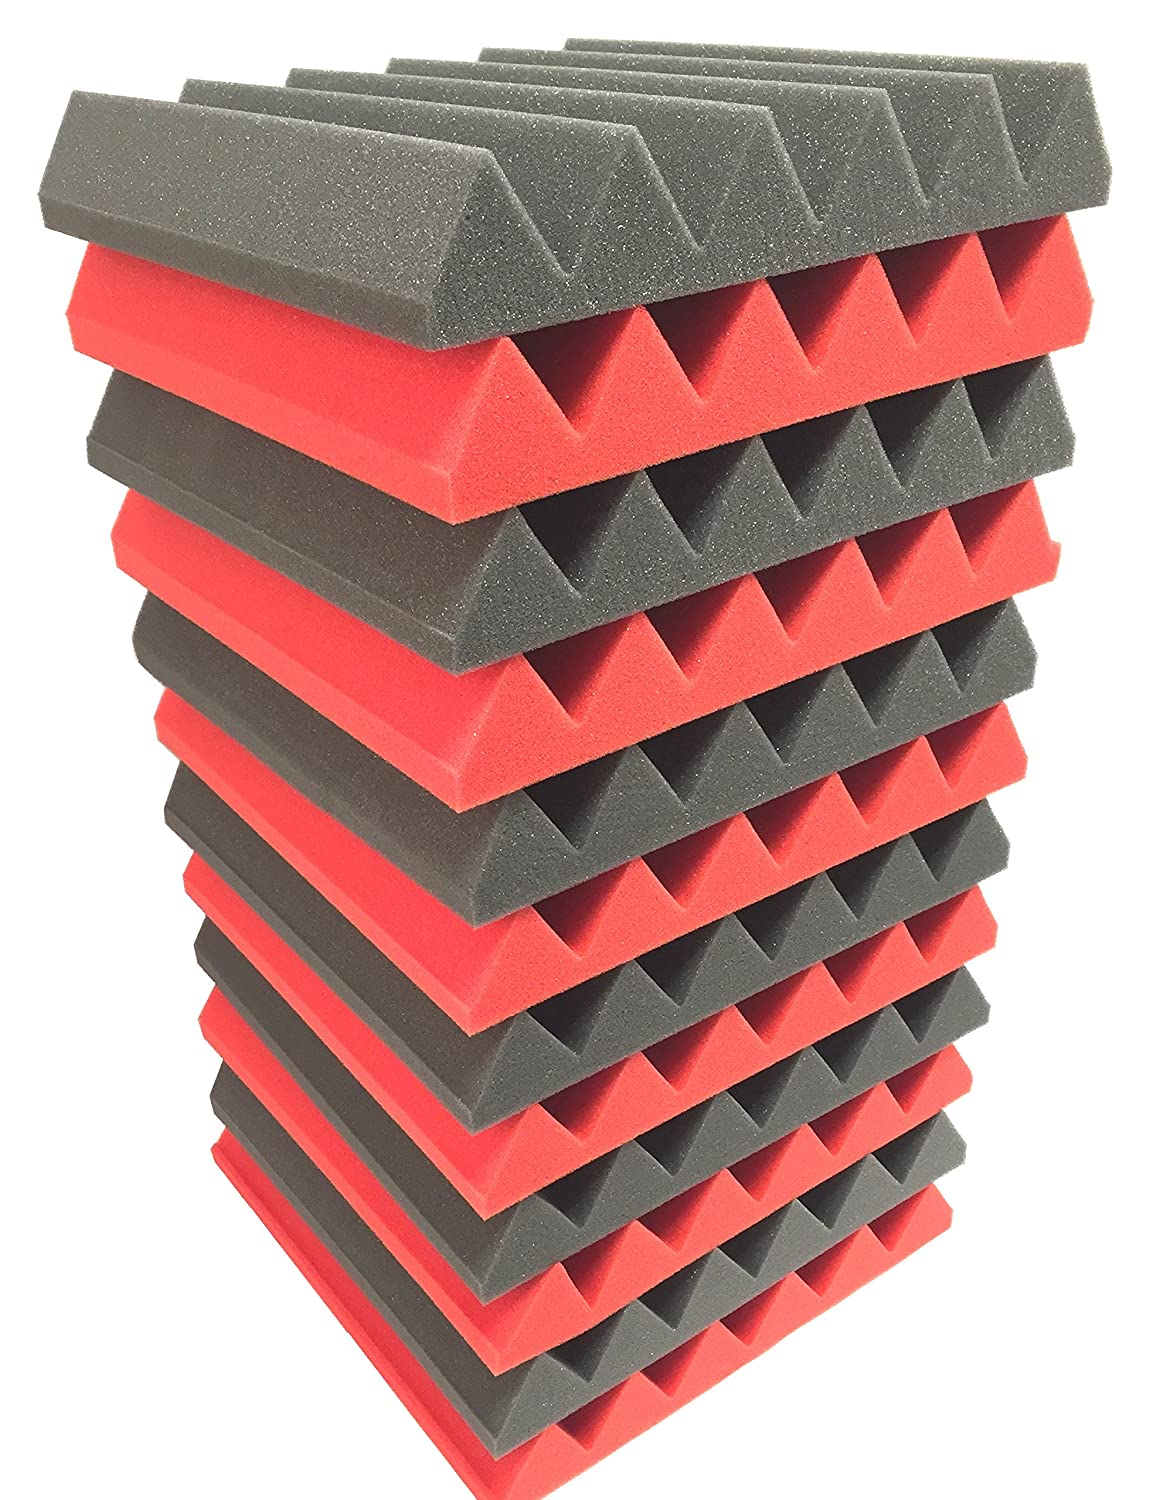 2x12x12 (12 Pack) RED/CHARCOAL Acoustic Wedge Soundproofing Studio Foam Tiles Soundproof Store